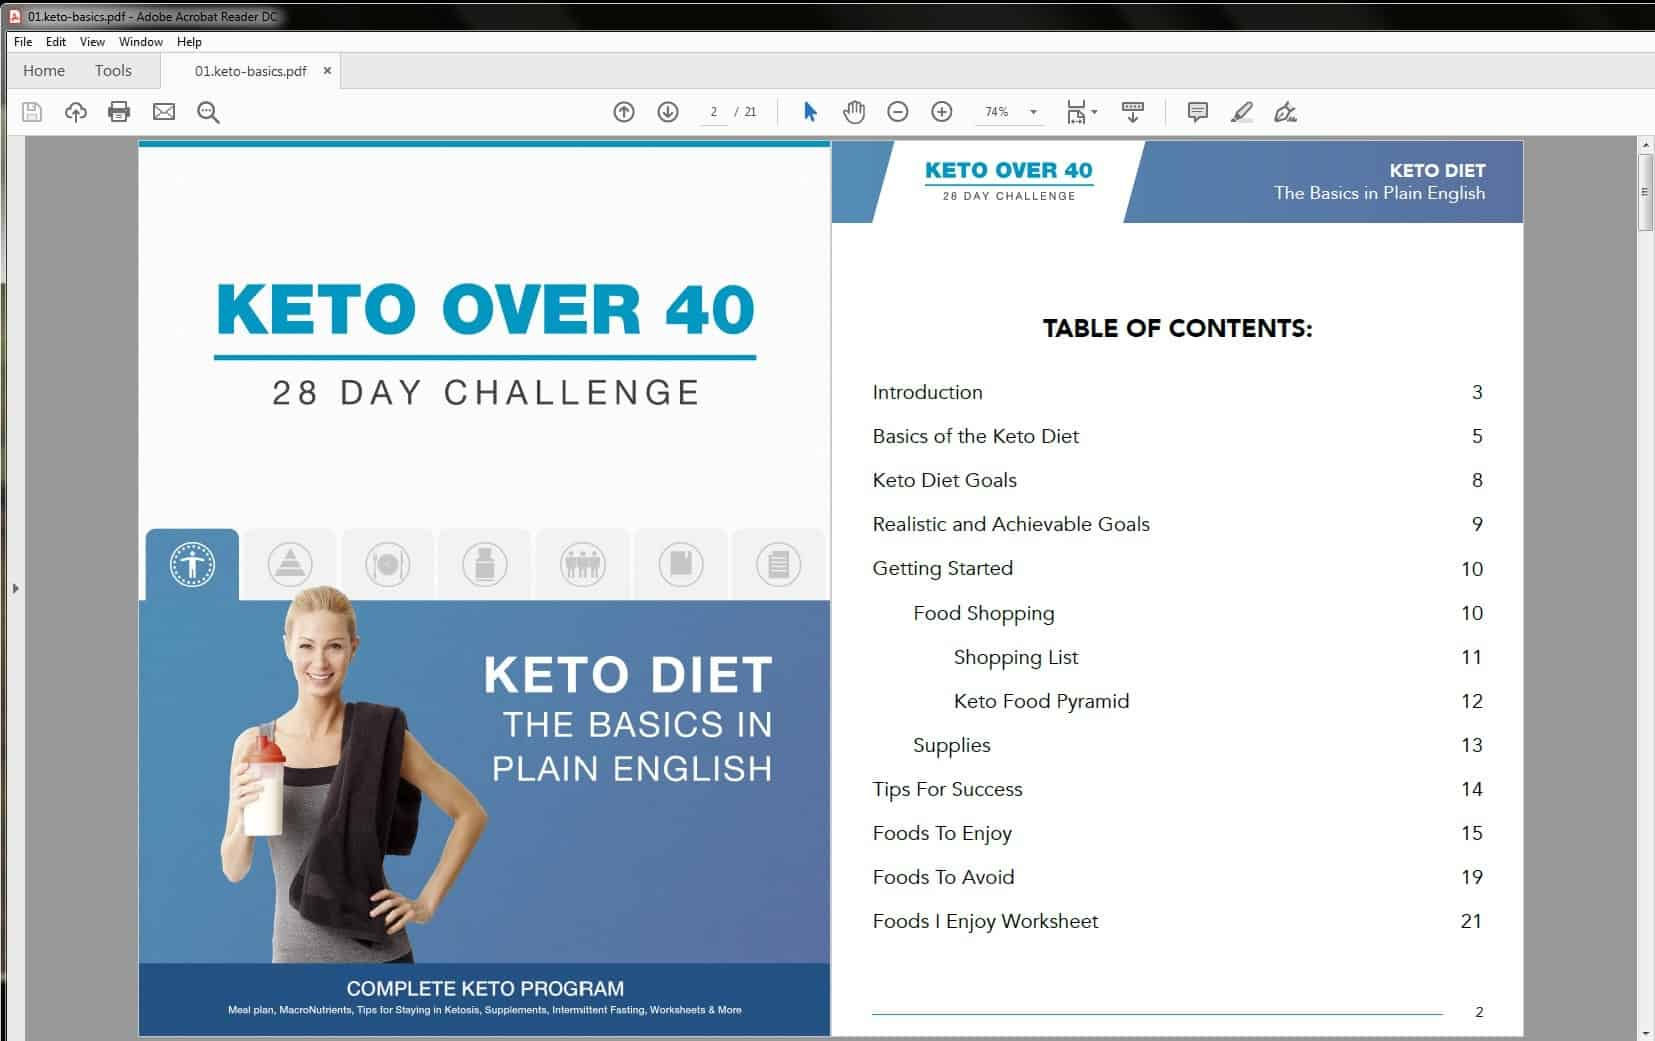 Keto Over Forty 28-Day Challenge Basics Table of Contents